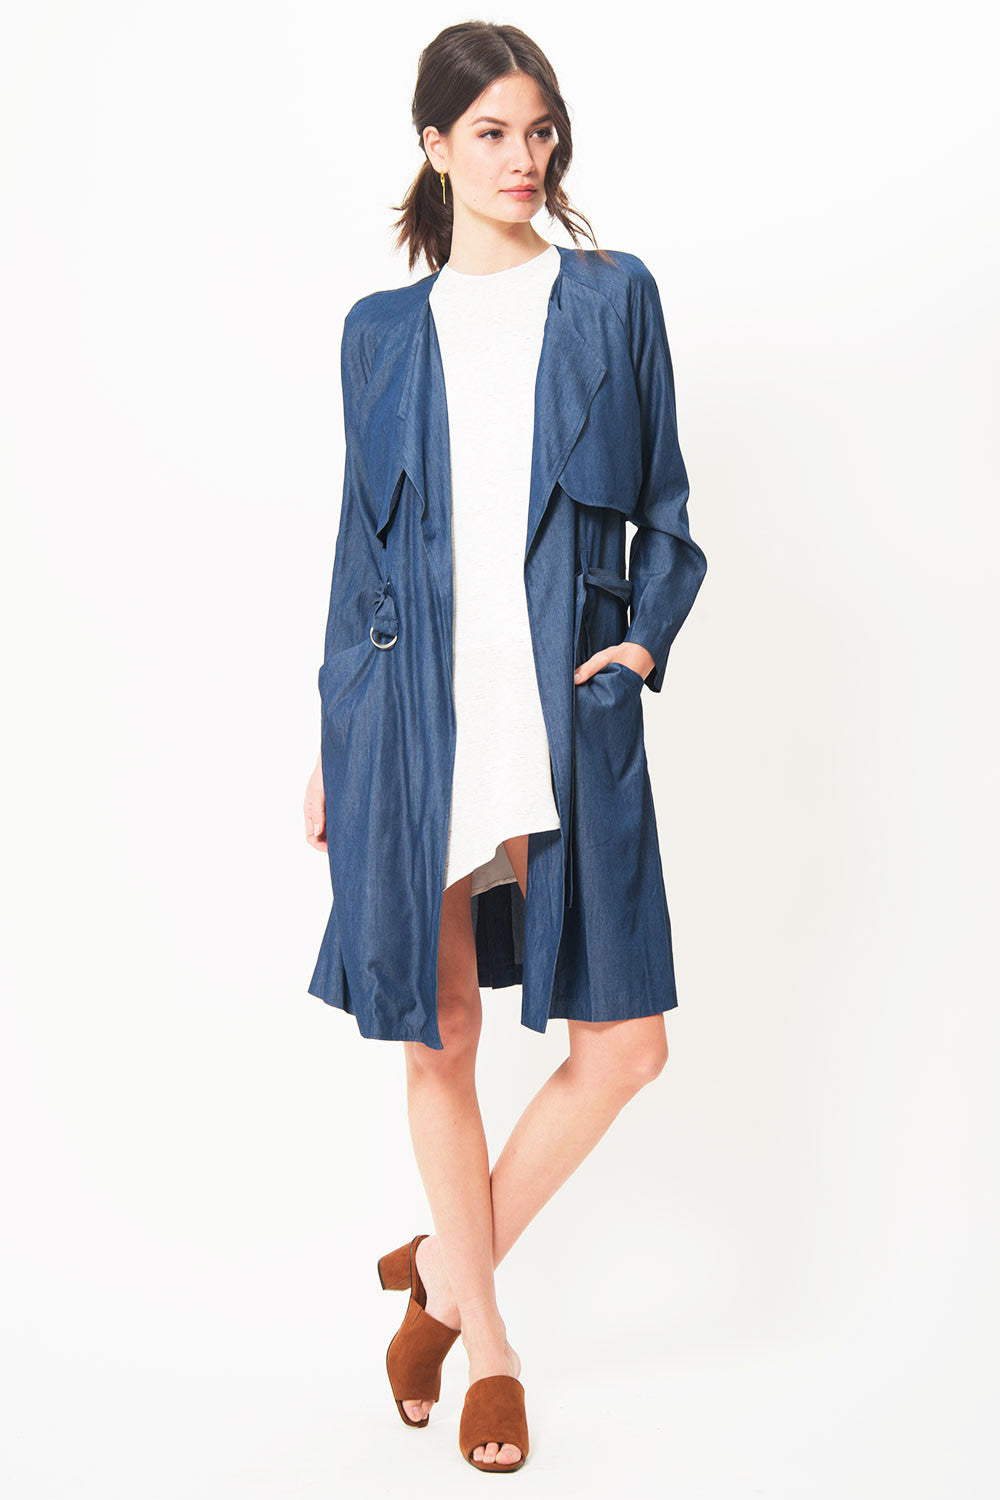 ASTR Denim Trench - Primary New York